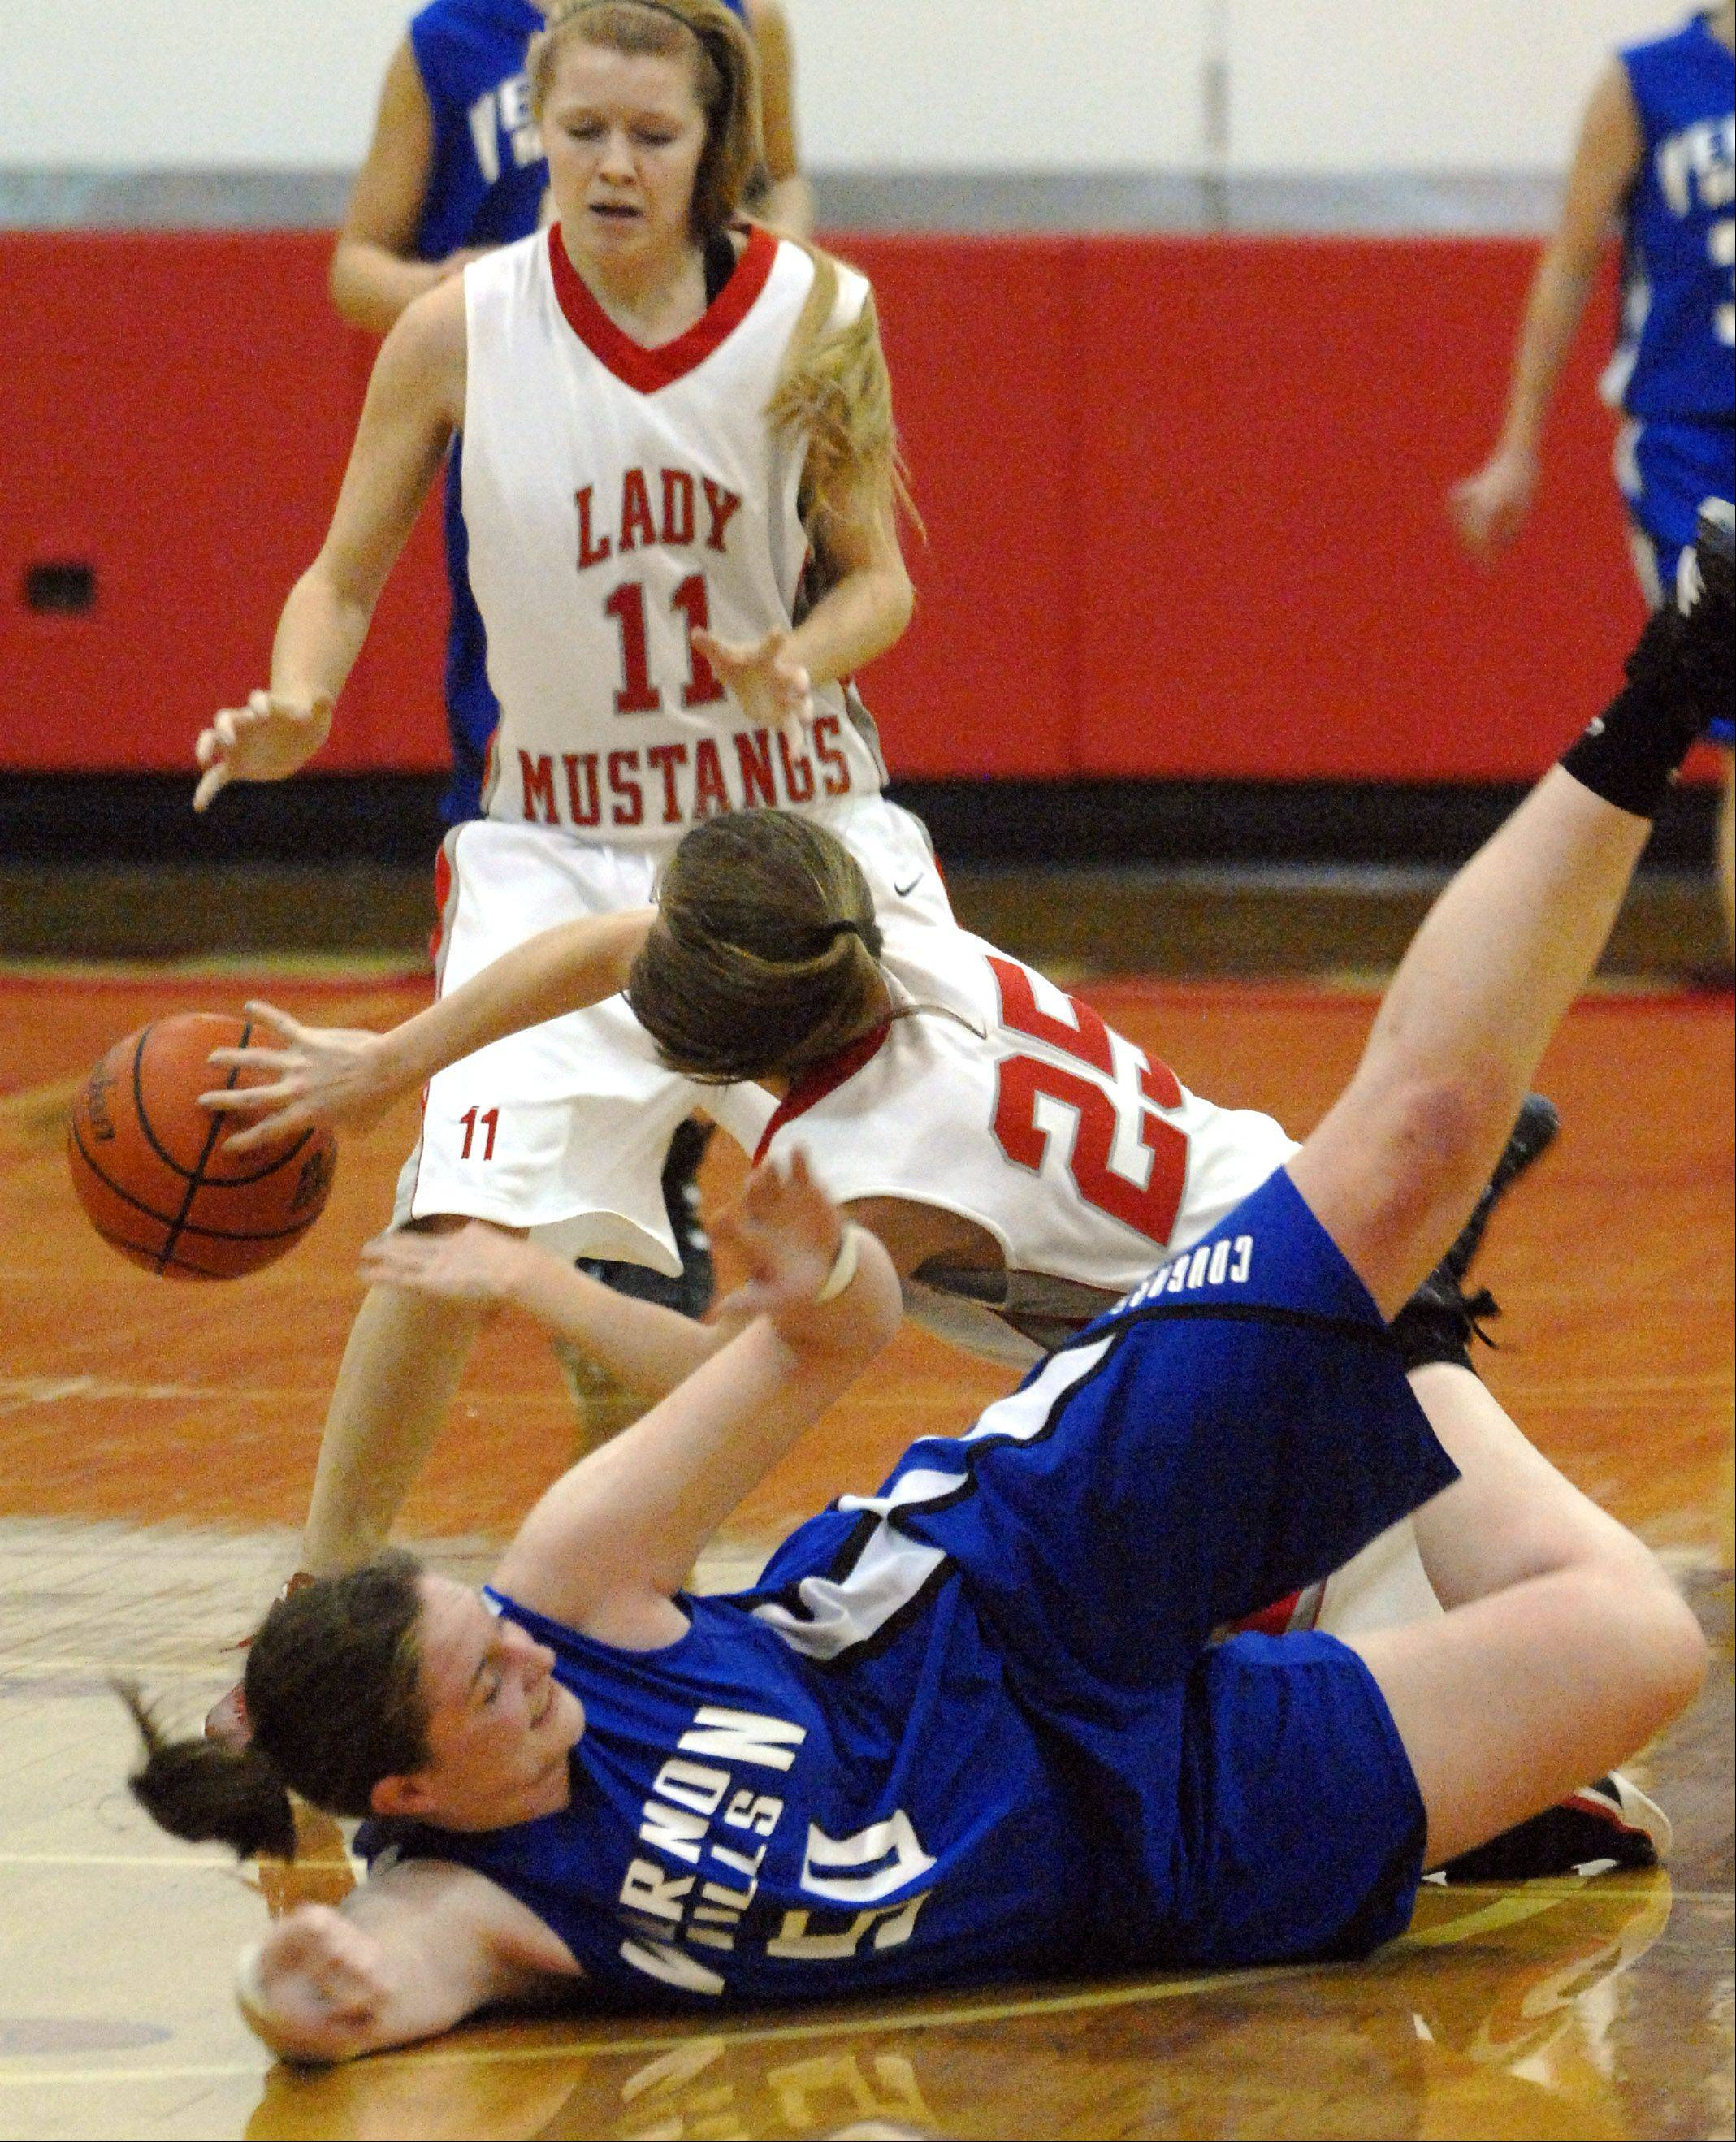 Mundelein's Amanda Davis, 25, passes to teammate Connie Dimick, 11, after reaching a loose ball ahead of Vernon Hills' Meri Bennett-Swanson during Thursday's Lady Mustangs Holiday Classic basketball game in Mundelein.